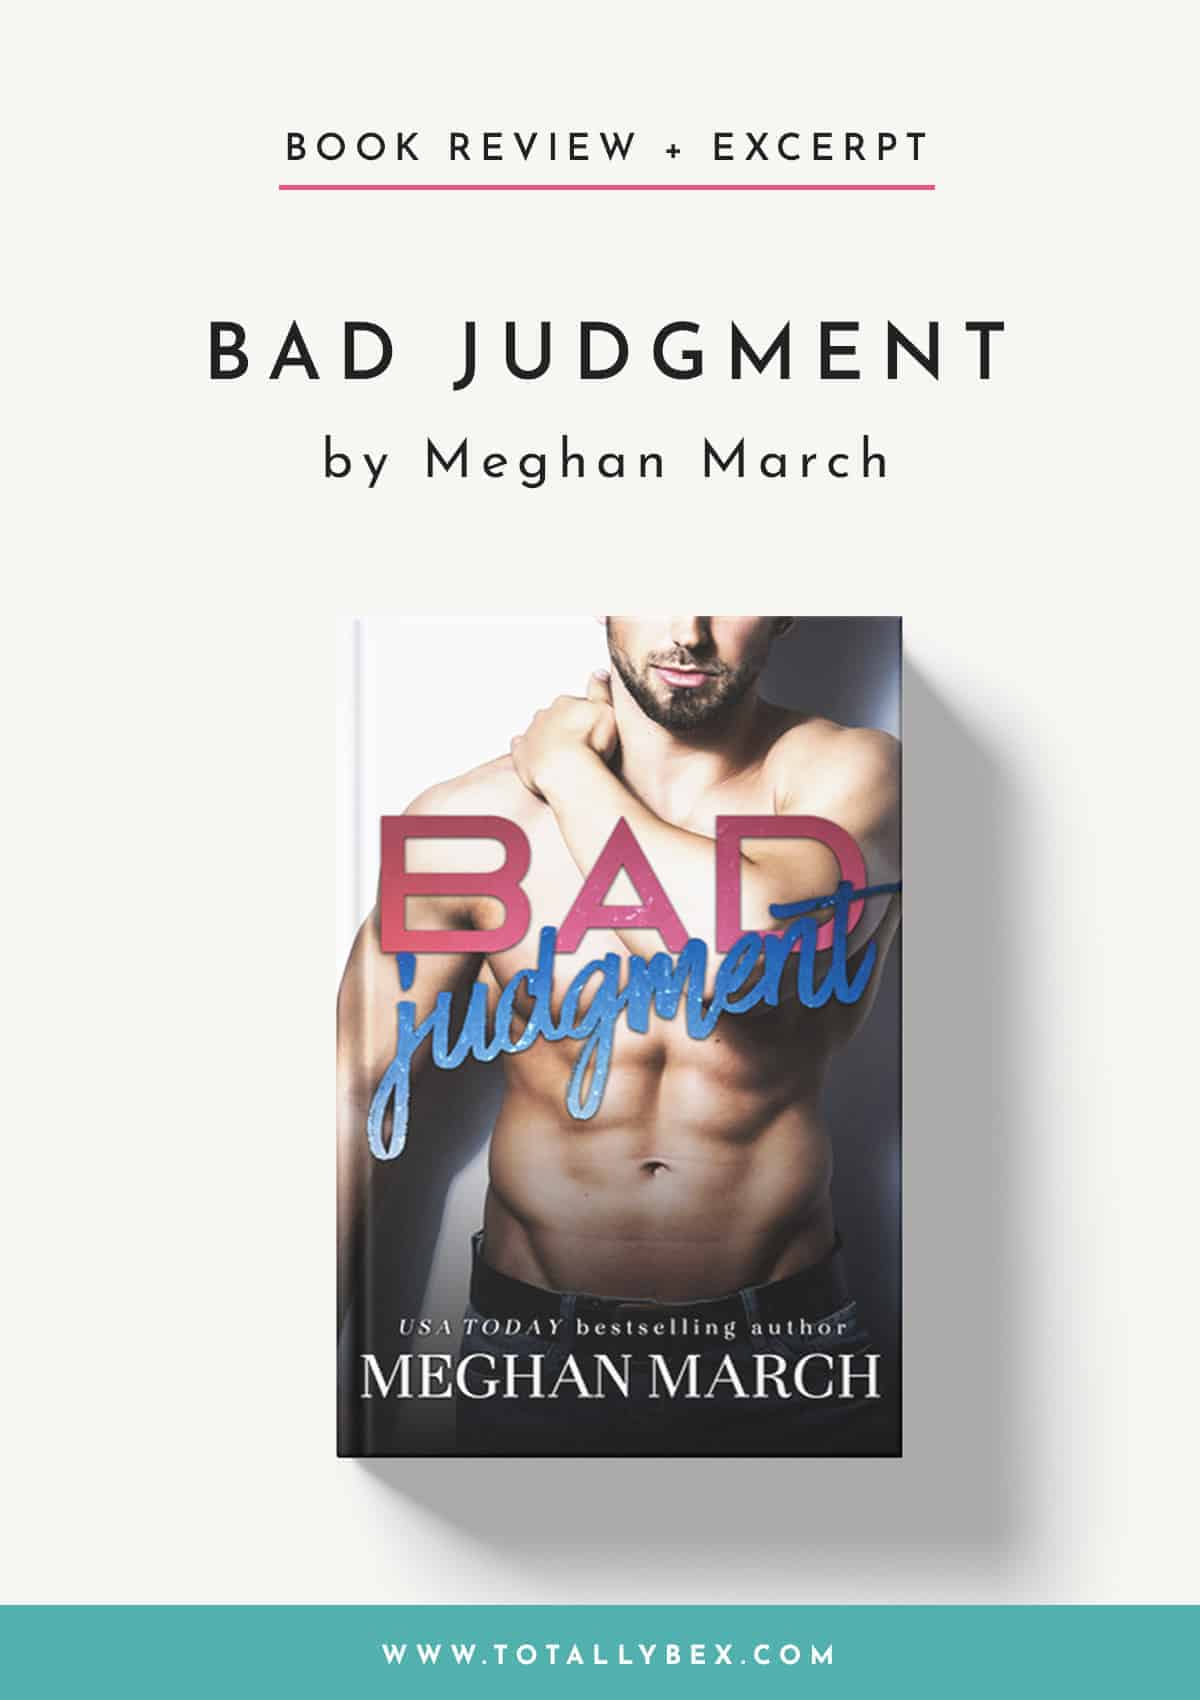 Bad Judgment by Meghan March-Book Review+Excerpt